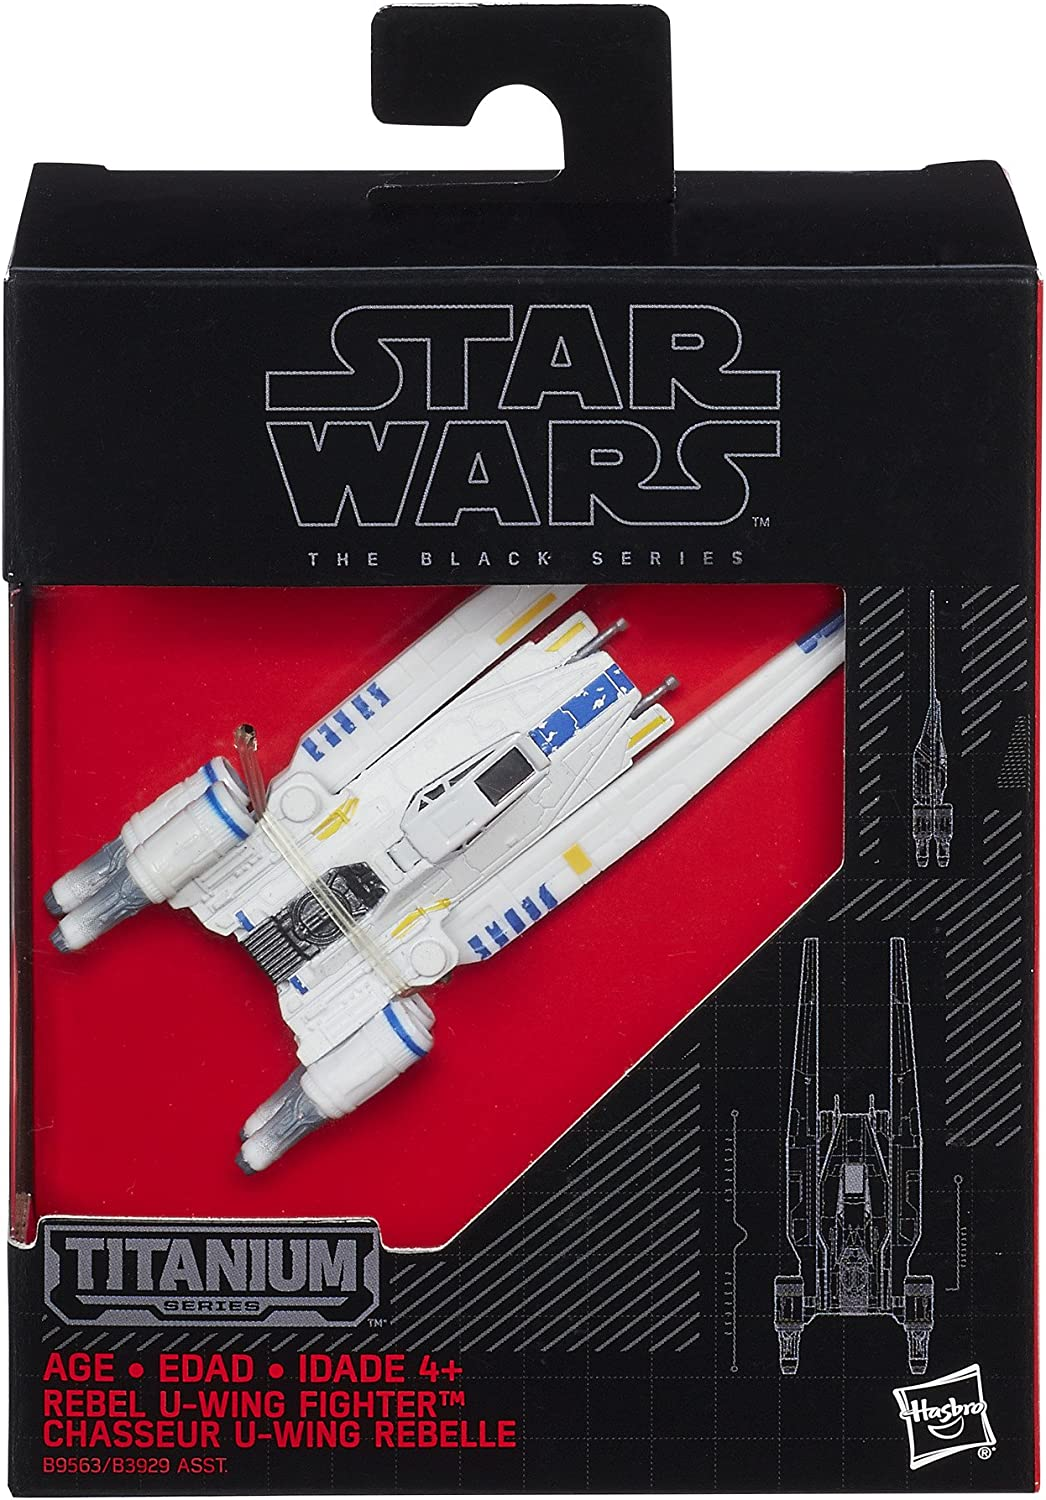 Star Wars Black//Titanium Series Rebel U-Wing Fighter 2-Inch Diecast Vehicle #29